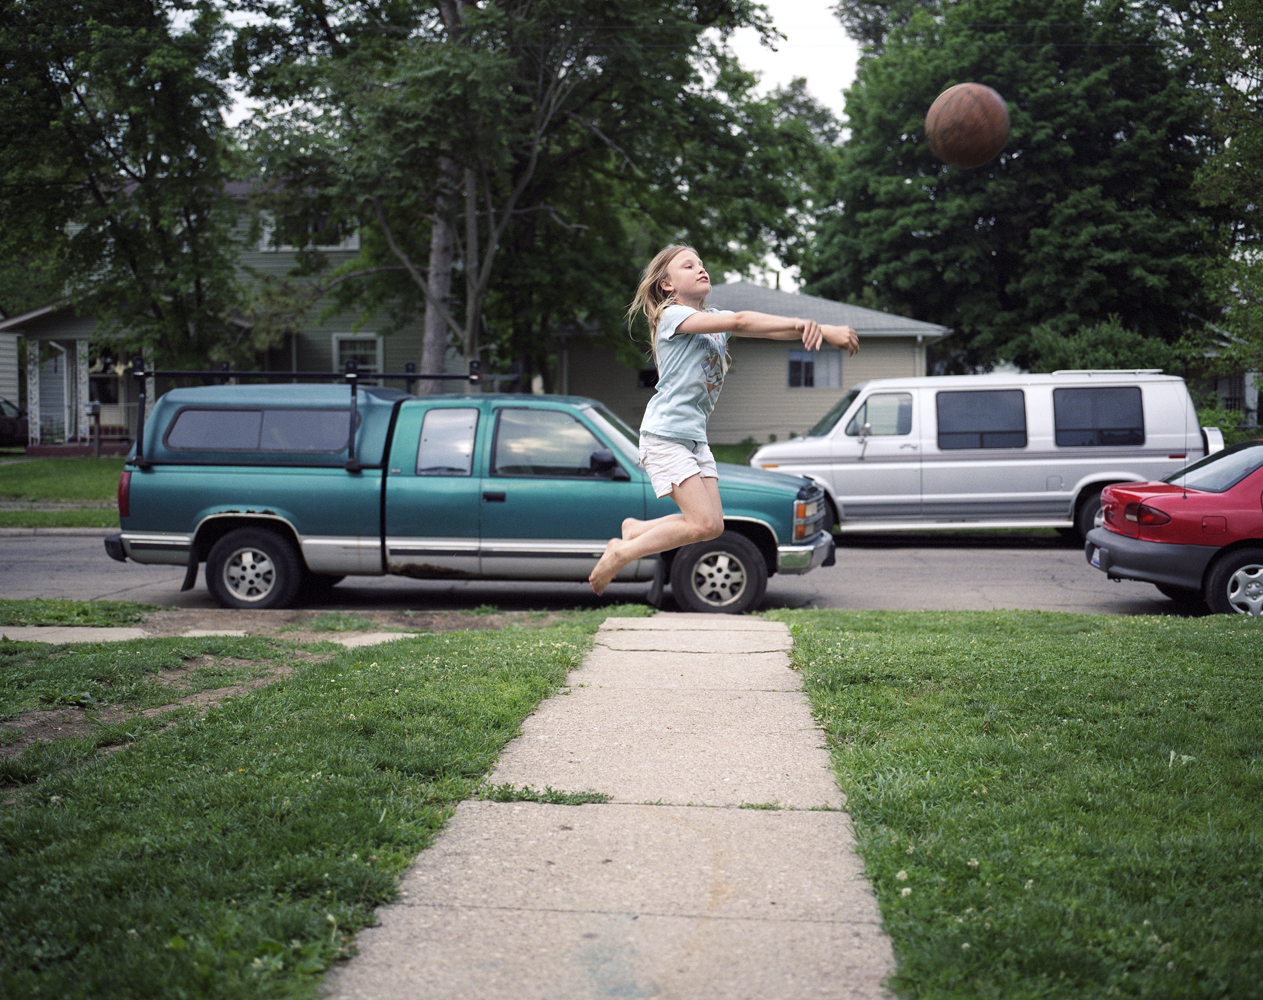 Playing basketball in the frontyard.  2009